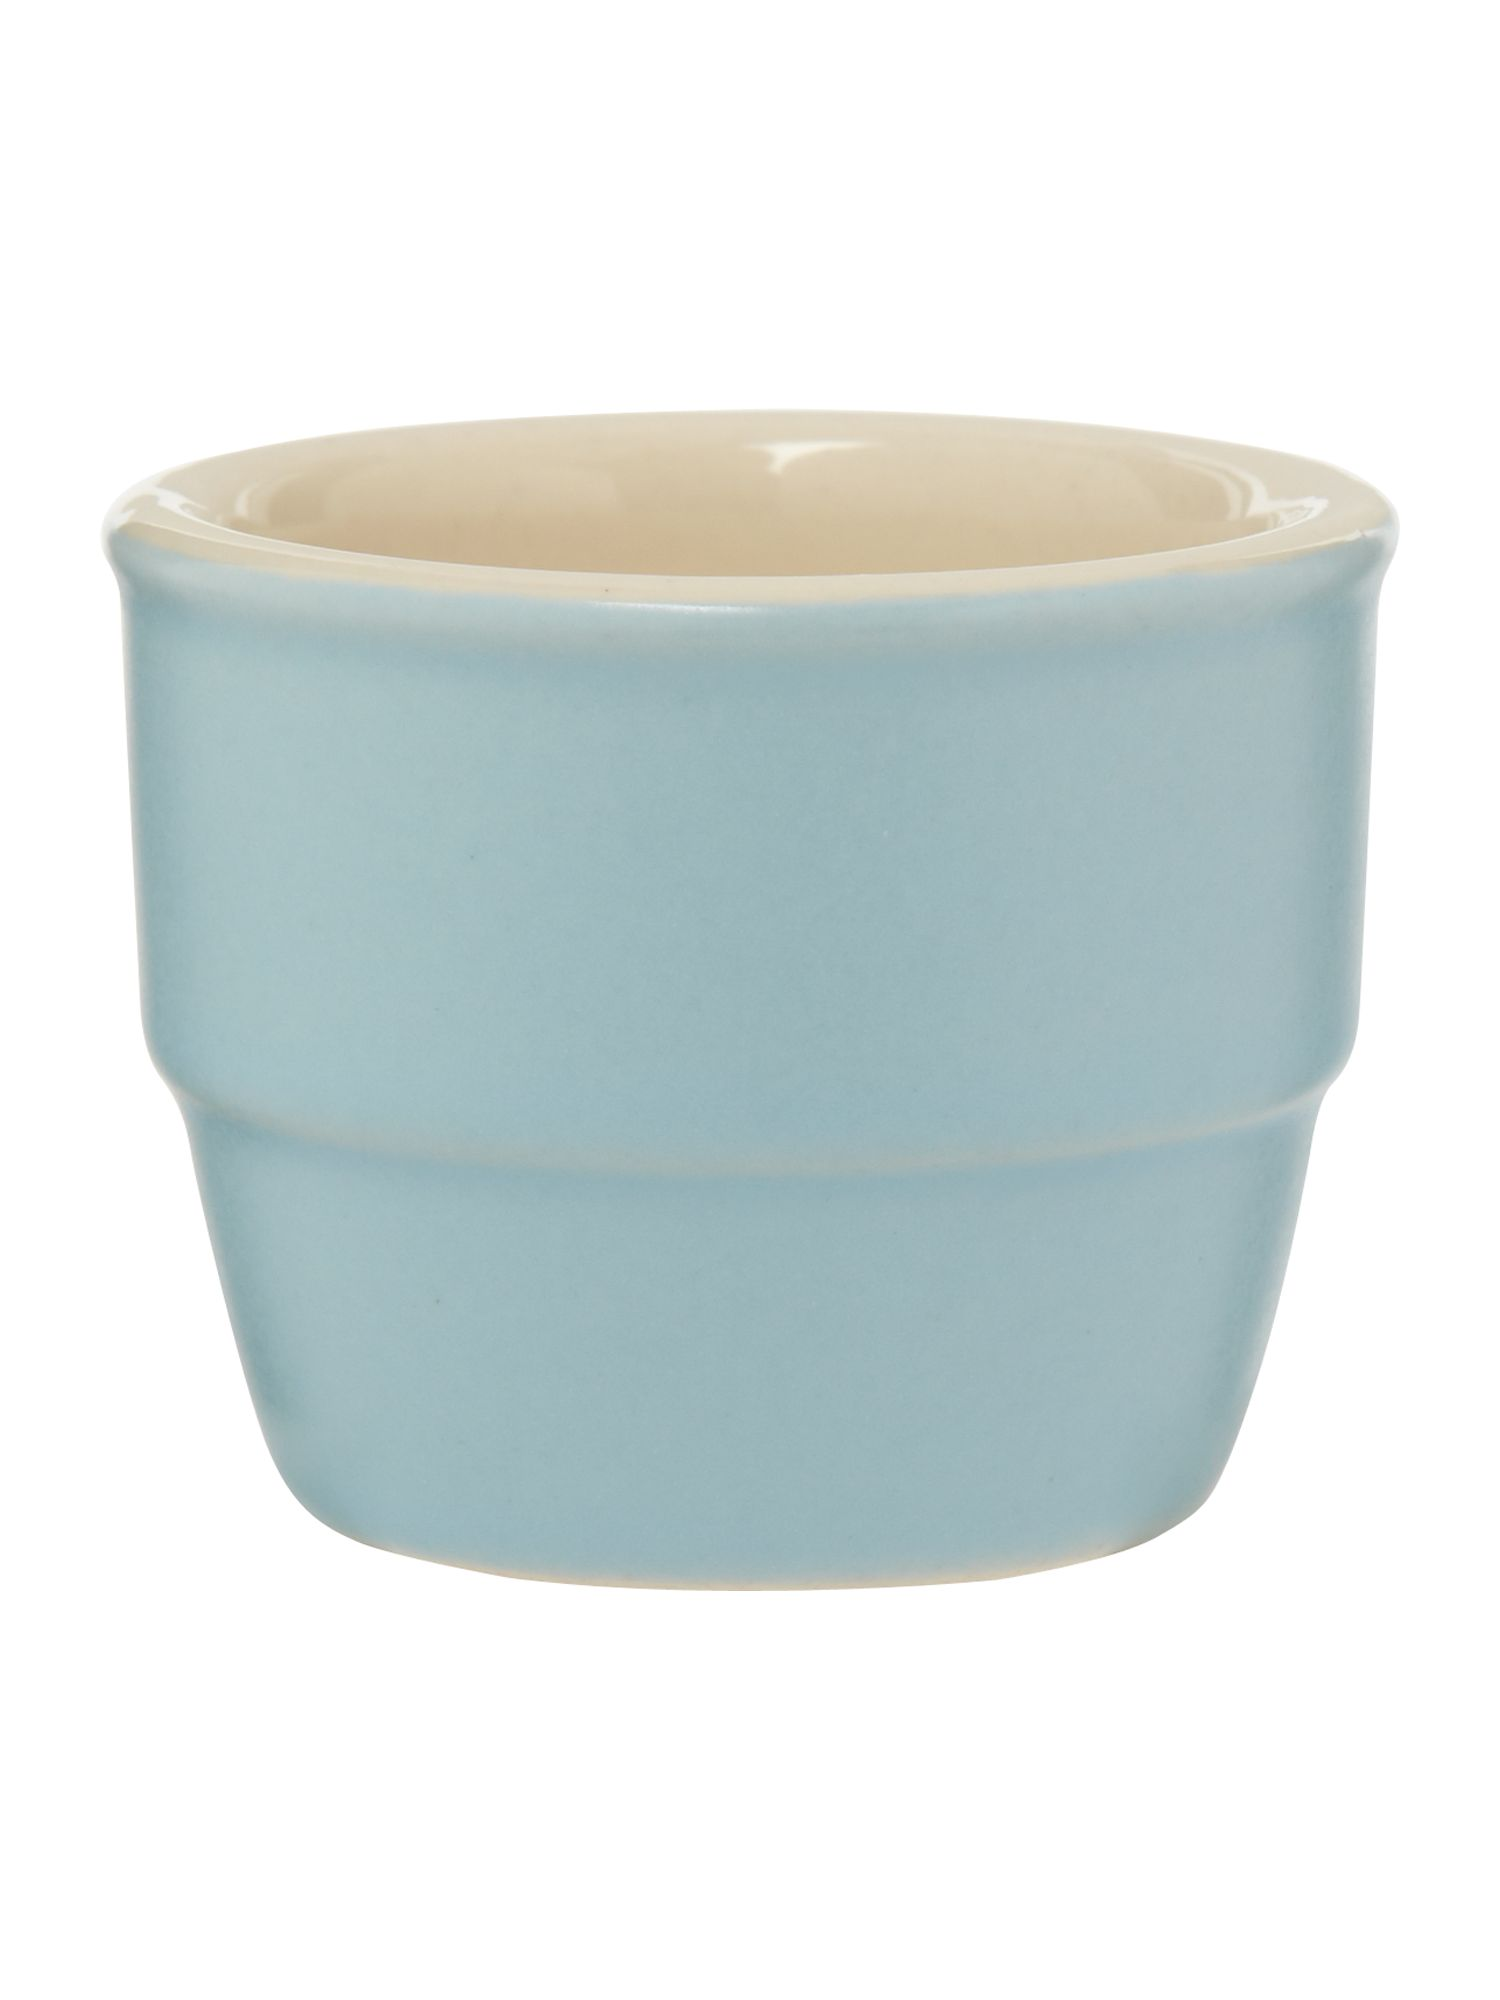 Maison egg cups set of 4, pale blue